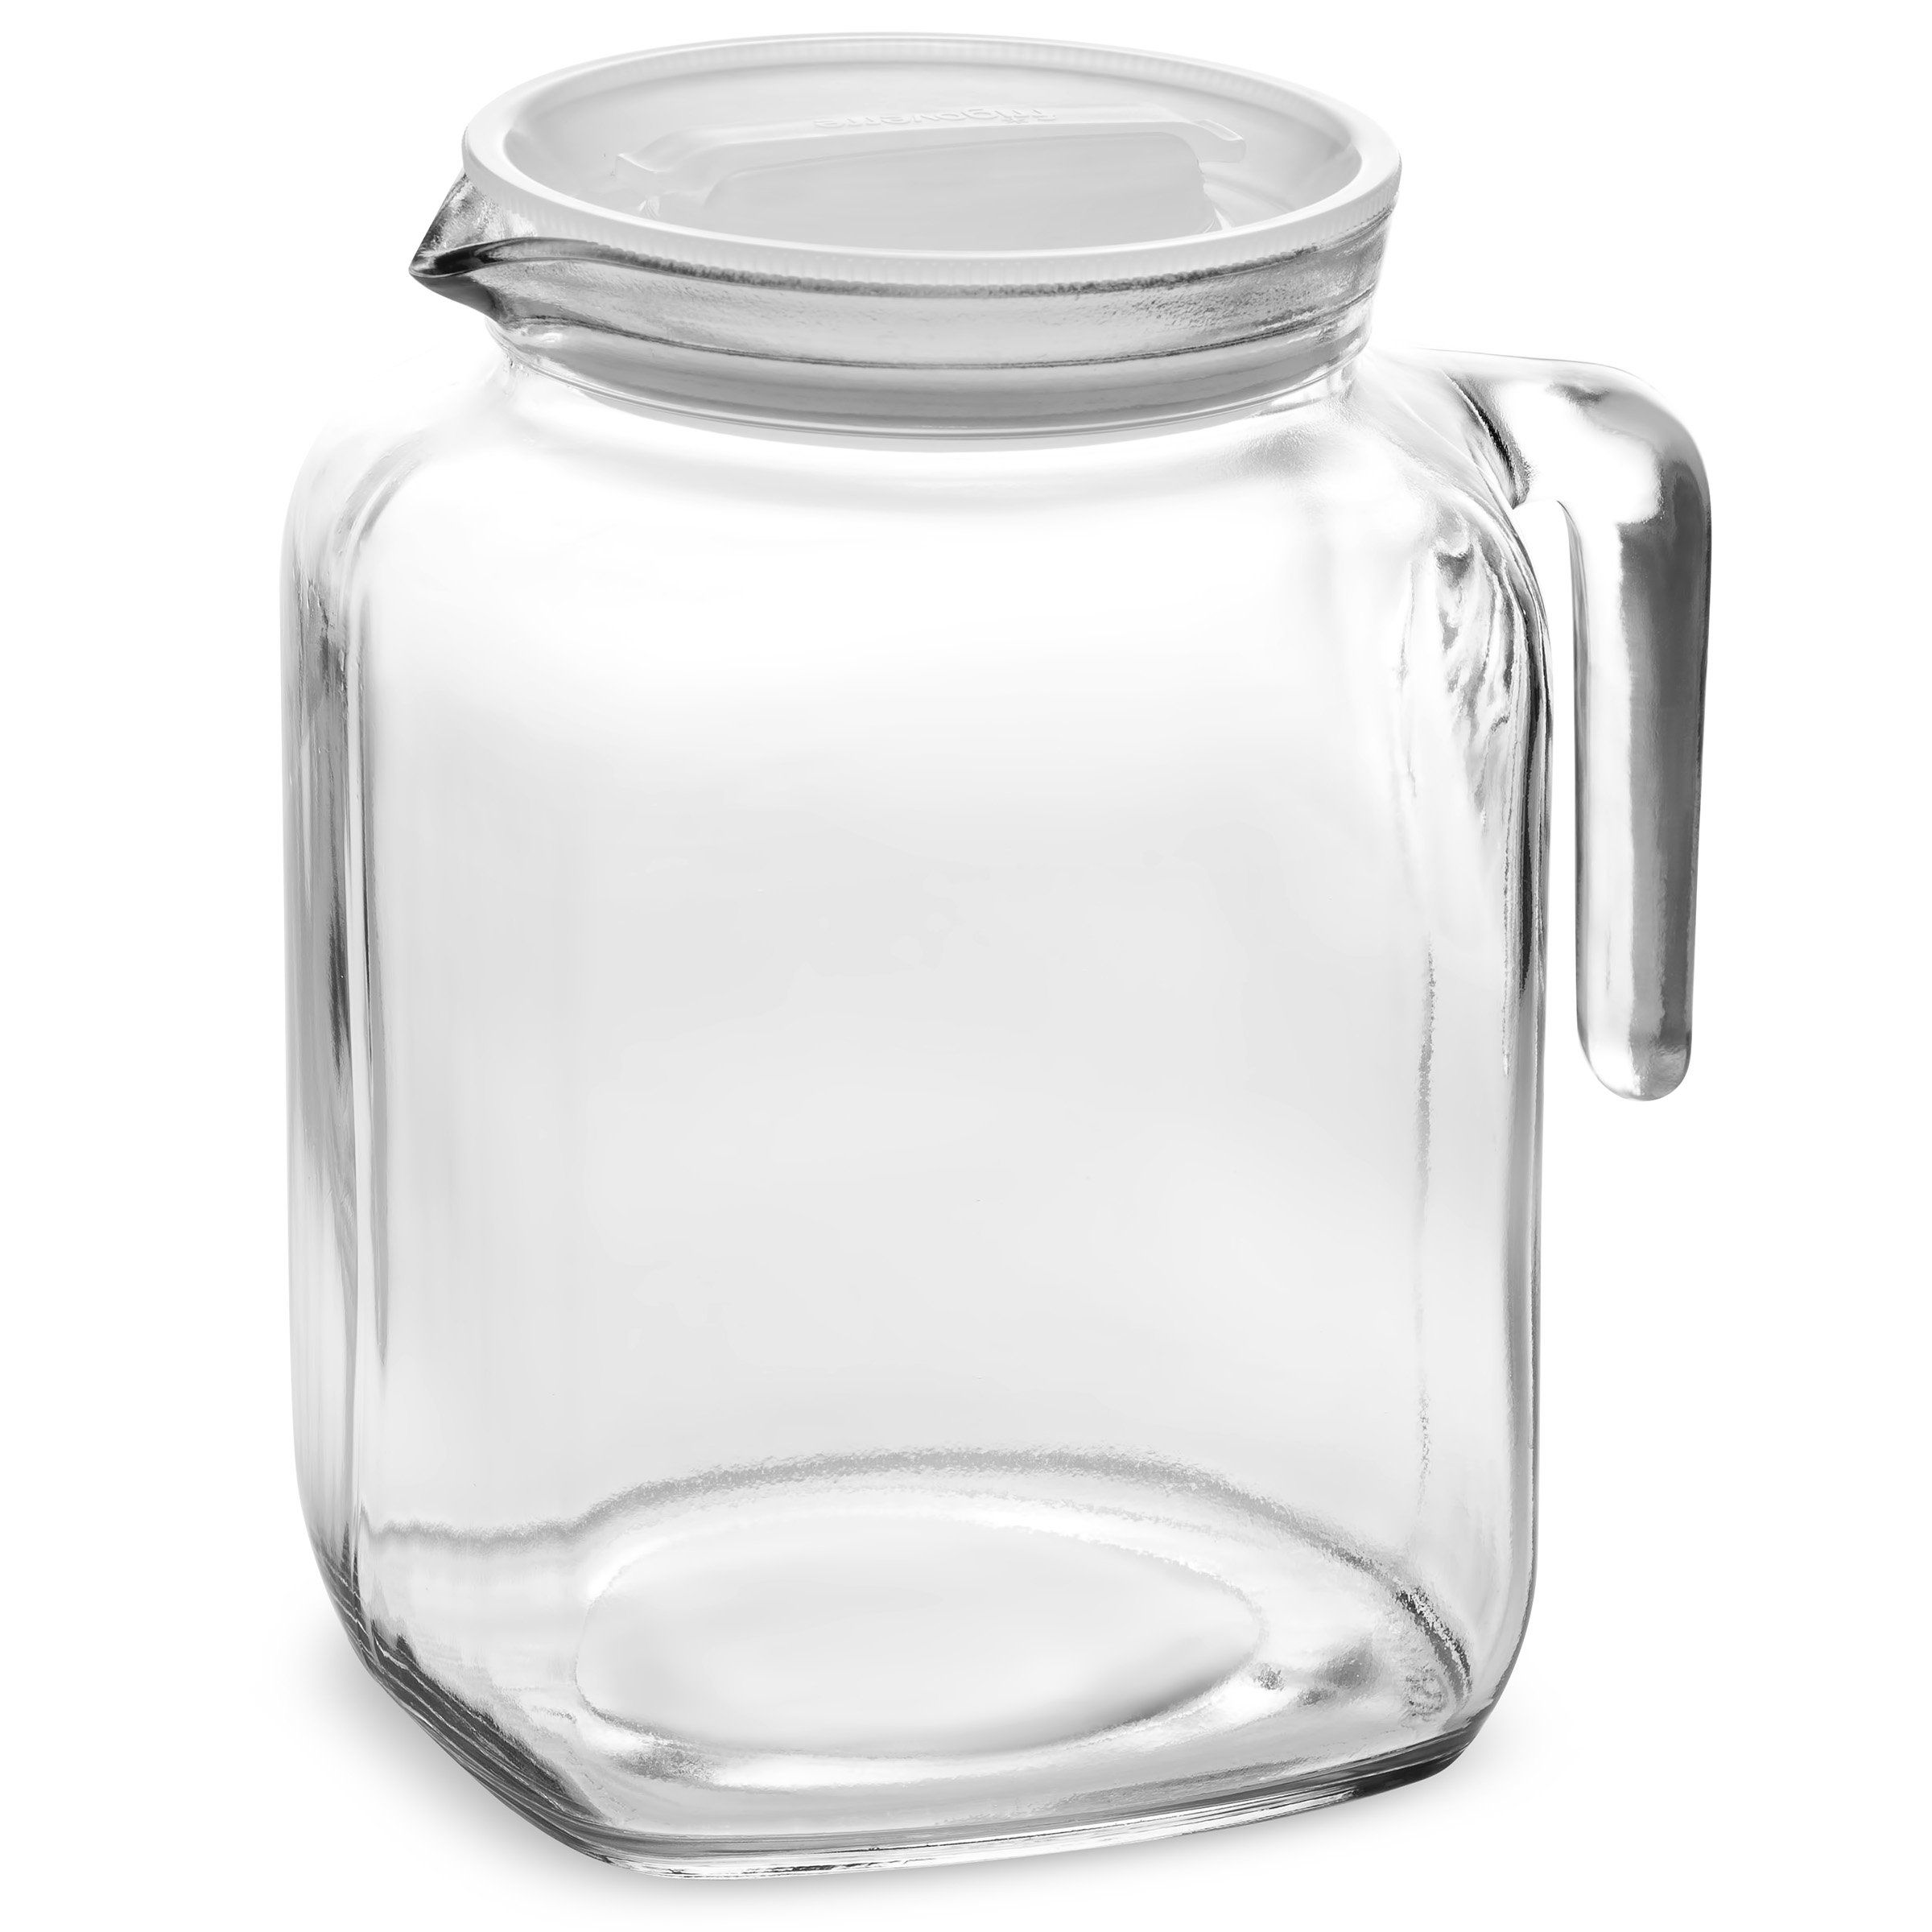 Bormioli Rocco Hermetic Seal Glass Pitcher With Lid And Spout 68 Ounce Great For Homemade Juice And Iced Tea Homemade Juice Glass Milk Bottles Bormioli Rocco